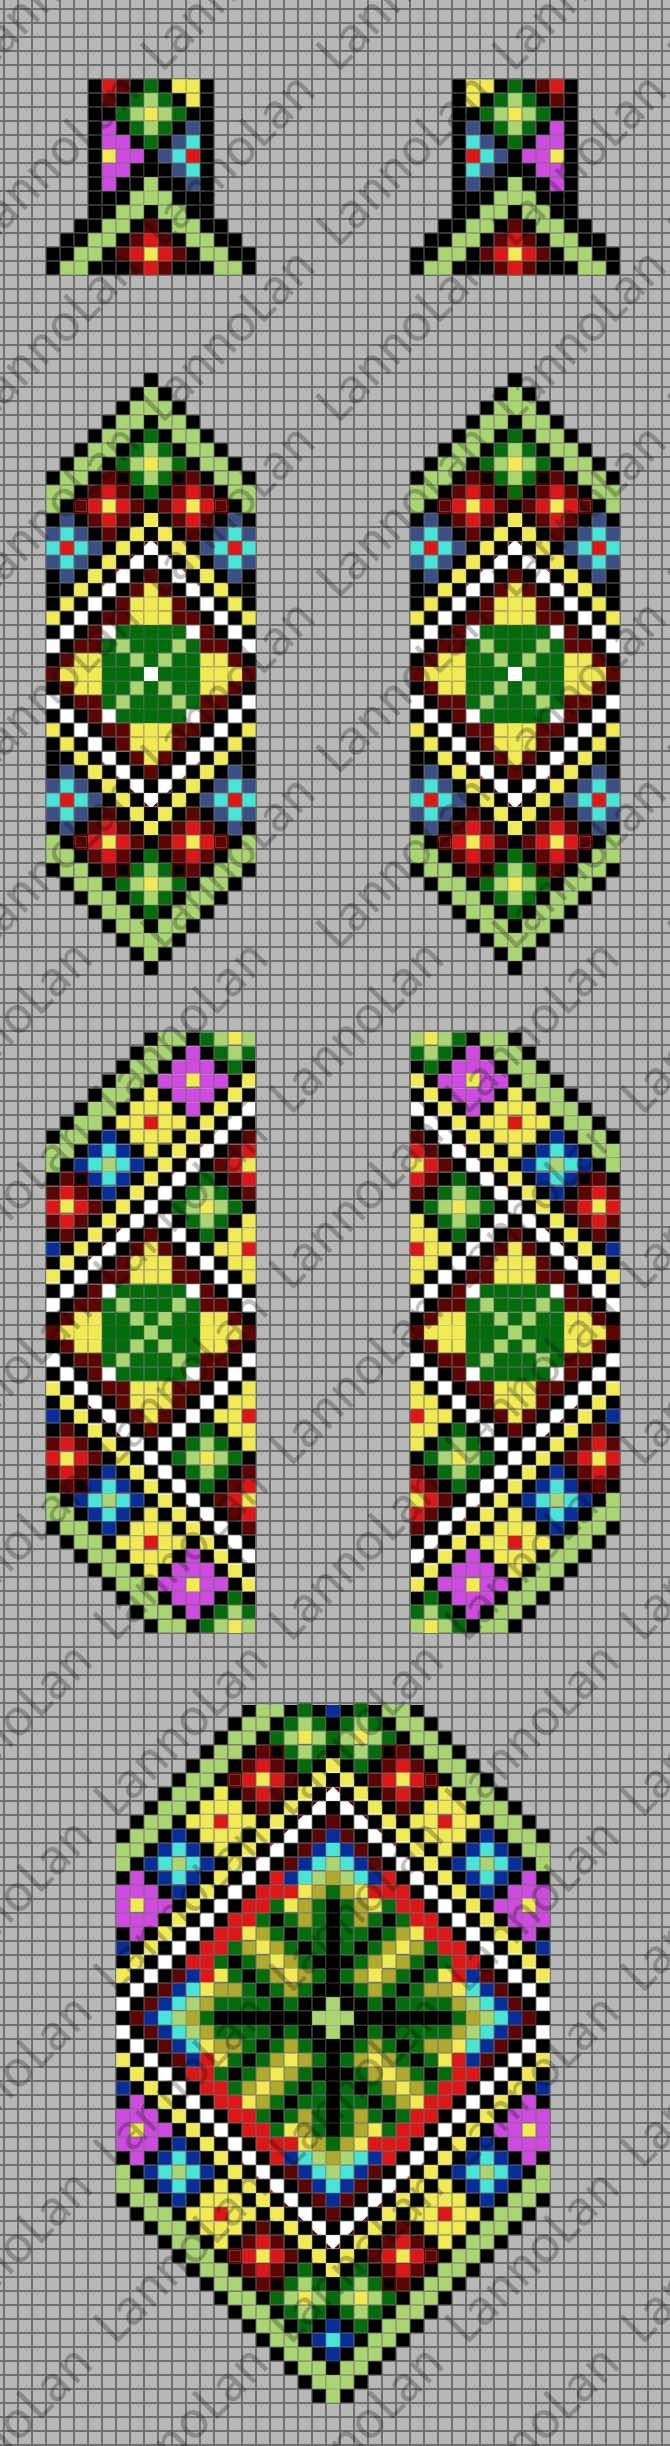 Ukrainian pattern - necklace - loom pattern - beads ... inspired by: http://media-cache-ak0.pinimg.com/600x/30/d8/60/30d8600fce50f2bbf4d7116037e775a6.jpg